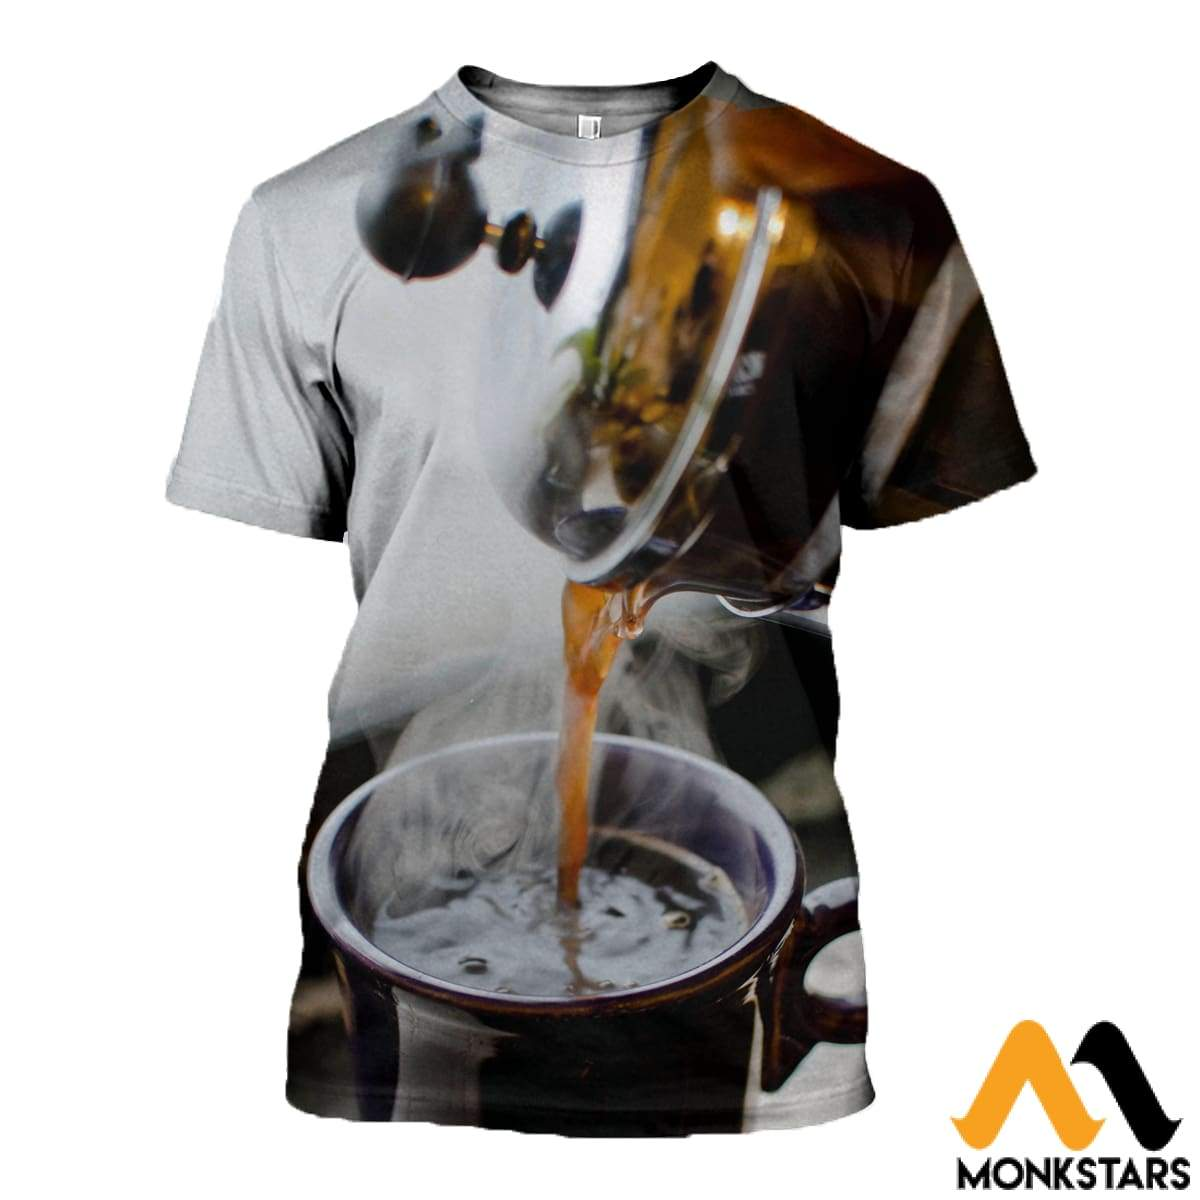 3D All Over Printed Coffee T-Shirt Hoodie Adal120415 / Xs Clothes